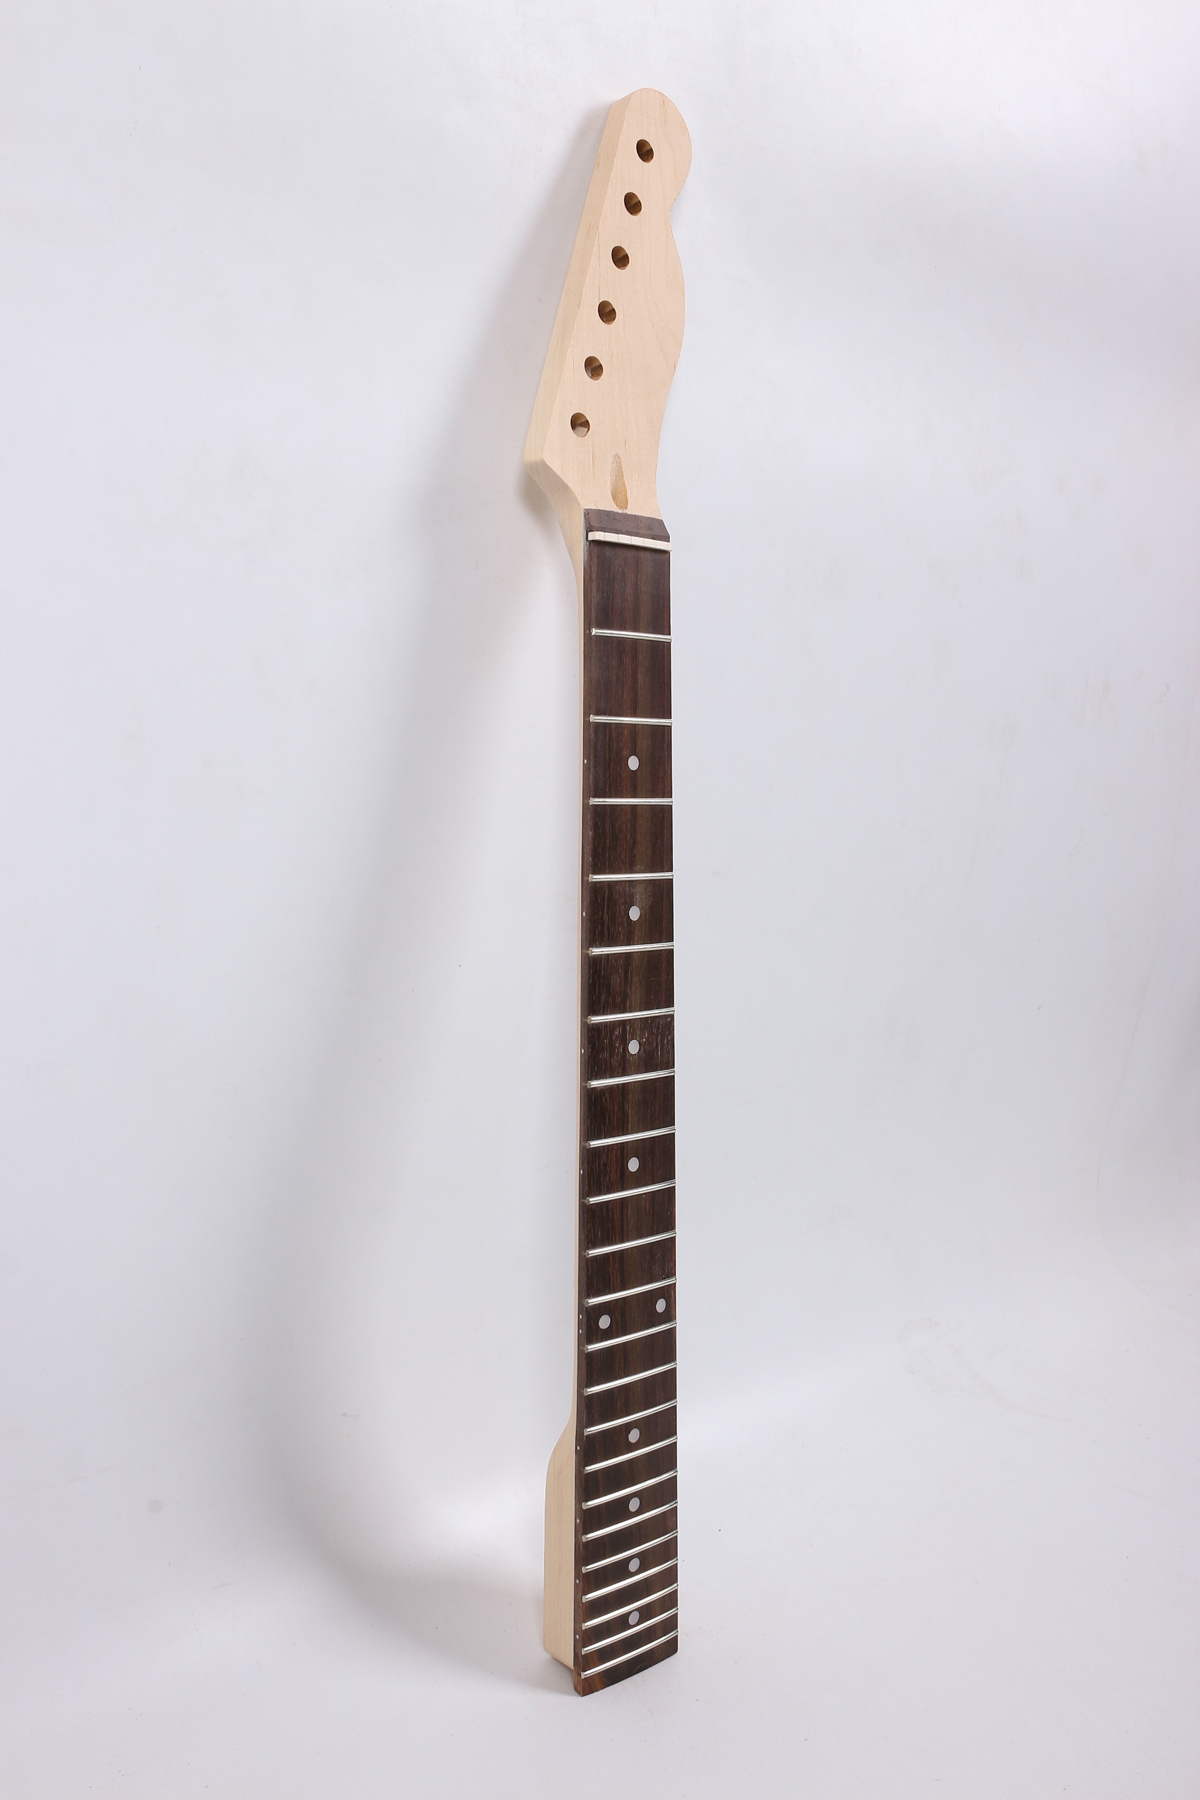 Yinfente Telecaster Electric Guitar Neck Replacement 22 Fret Rosewood Fretboard Dot Inlay 25.5 Inch Maple Neck #TL76